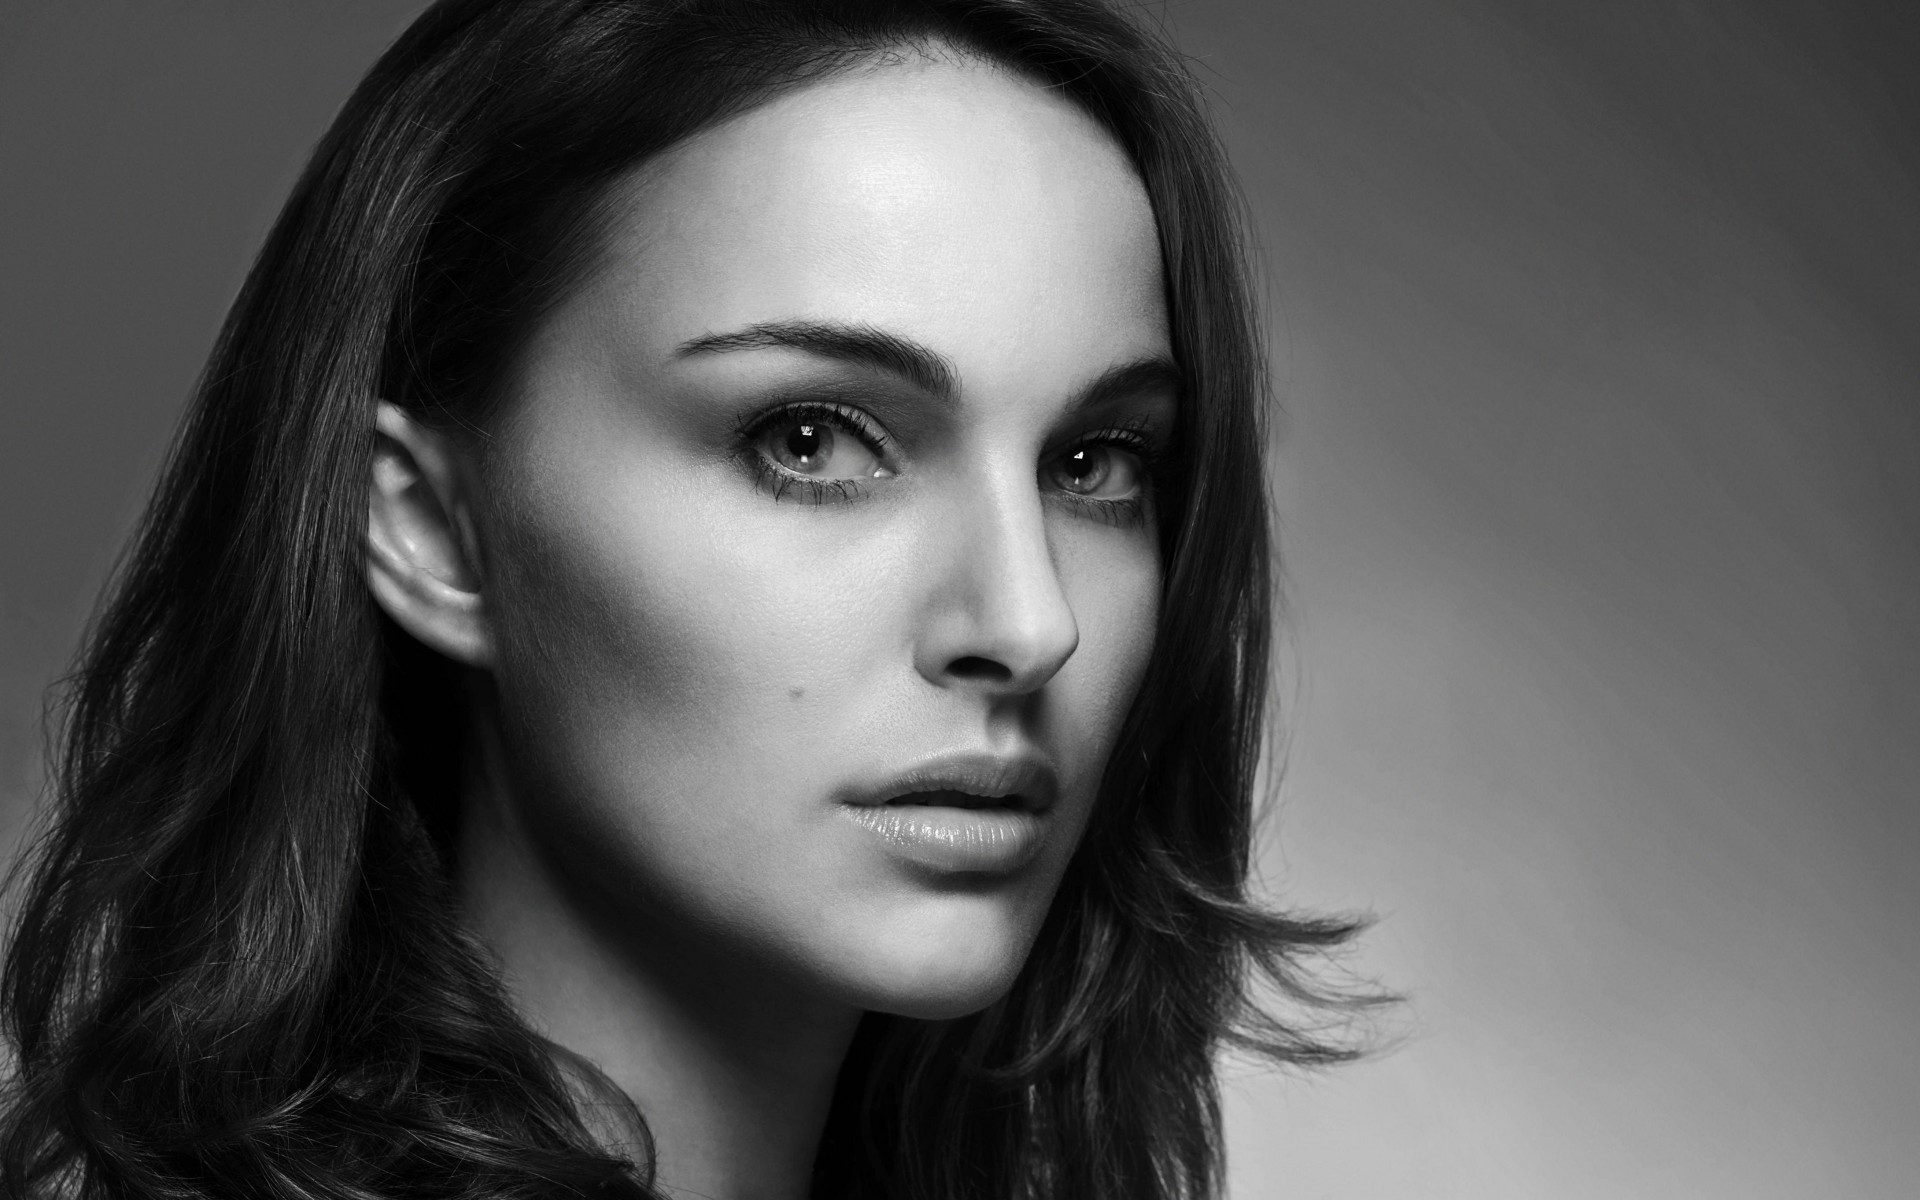 Natalie Portman in Black & White Wallpaper for Desktop 1920x1200